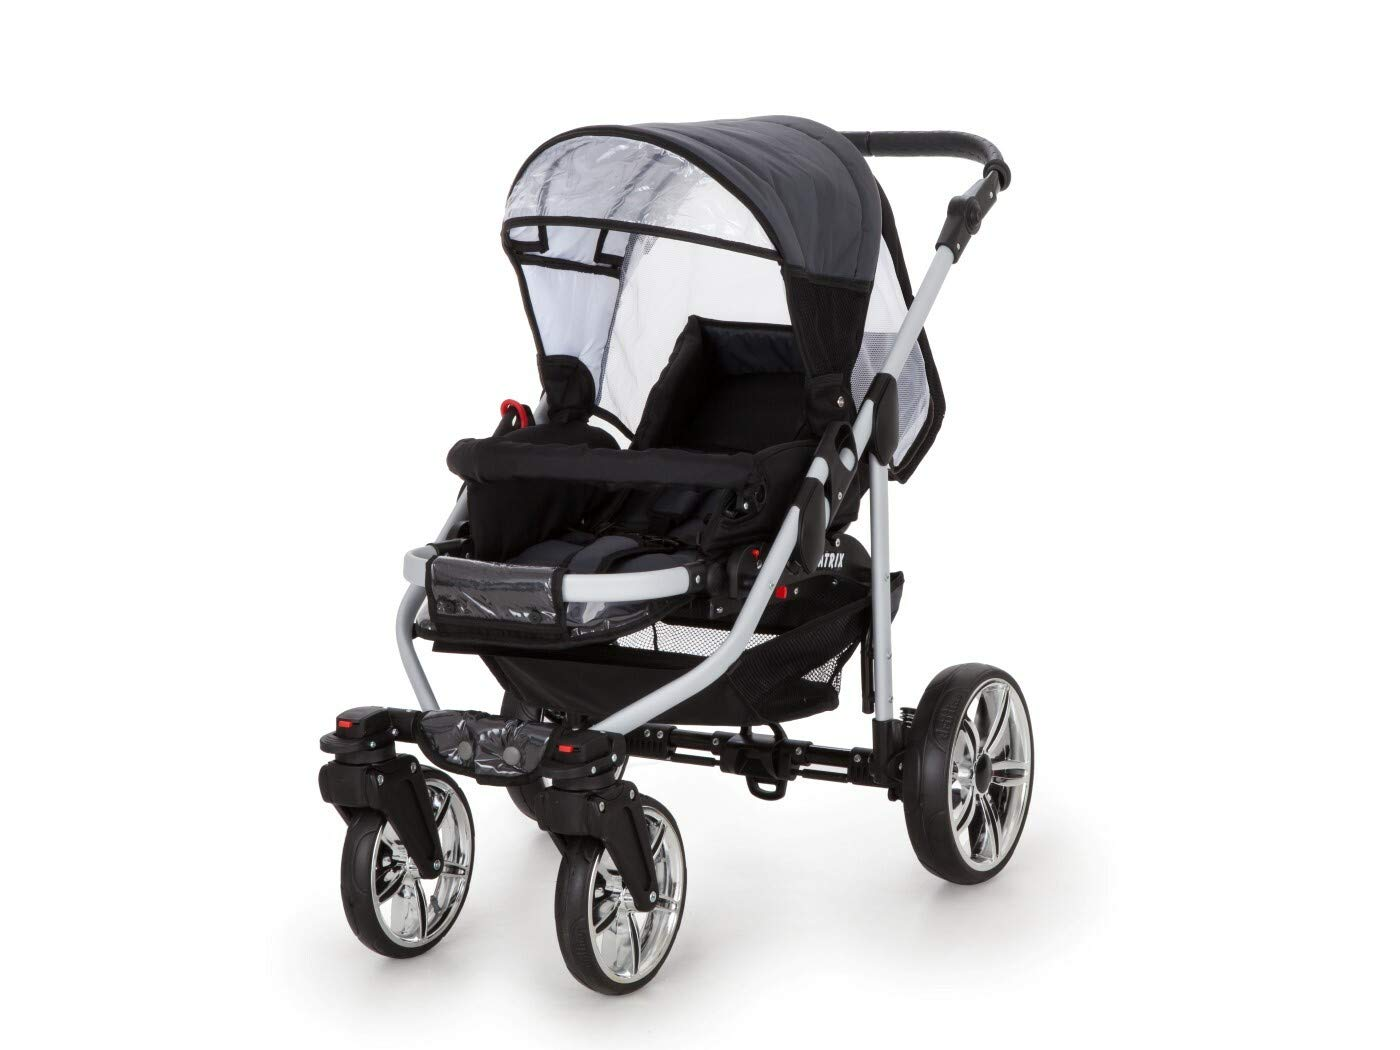 Travel System Stroller Pram Pushchair 2in1 3in1 Set Isofix X-Car by SaintBaby Black & Check 3in1 with Baby seat SaintBaby 3in1 or 2in1 Selectable. At 3in1 you will also receive the car seat (baby seat). Of course you get the baby tub (classic pram) as well as the buggy attachment (sports seat) no matter if 2in1 or 3in1. The car naturally complies with the EU safety standard EN1888. During production and before shipment, each wagon is carefully inspected so that you can be sure you have one of the best wagons. Saintbaby stands for all-in-one carefree packages, so you will also receive a diaper bag in the same colour as the car as well as rain and insect protection free of charge. With all the colours of this pram you will find the pram of your dreams. 6